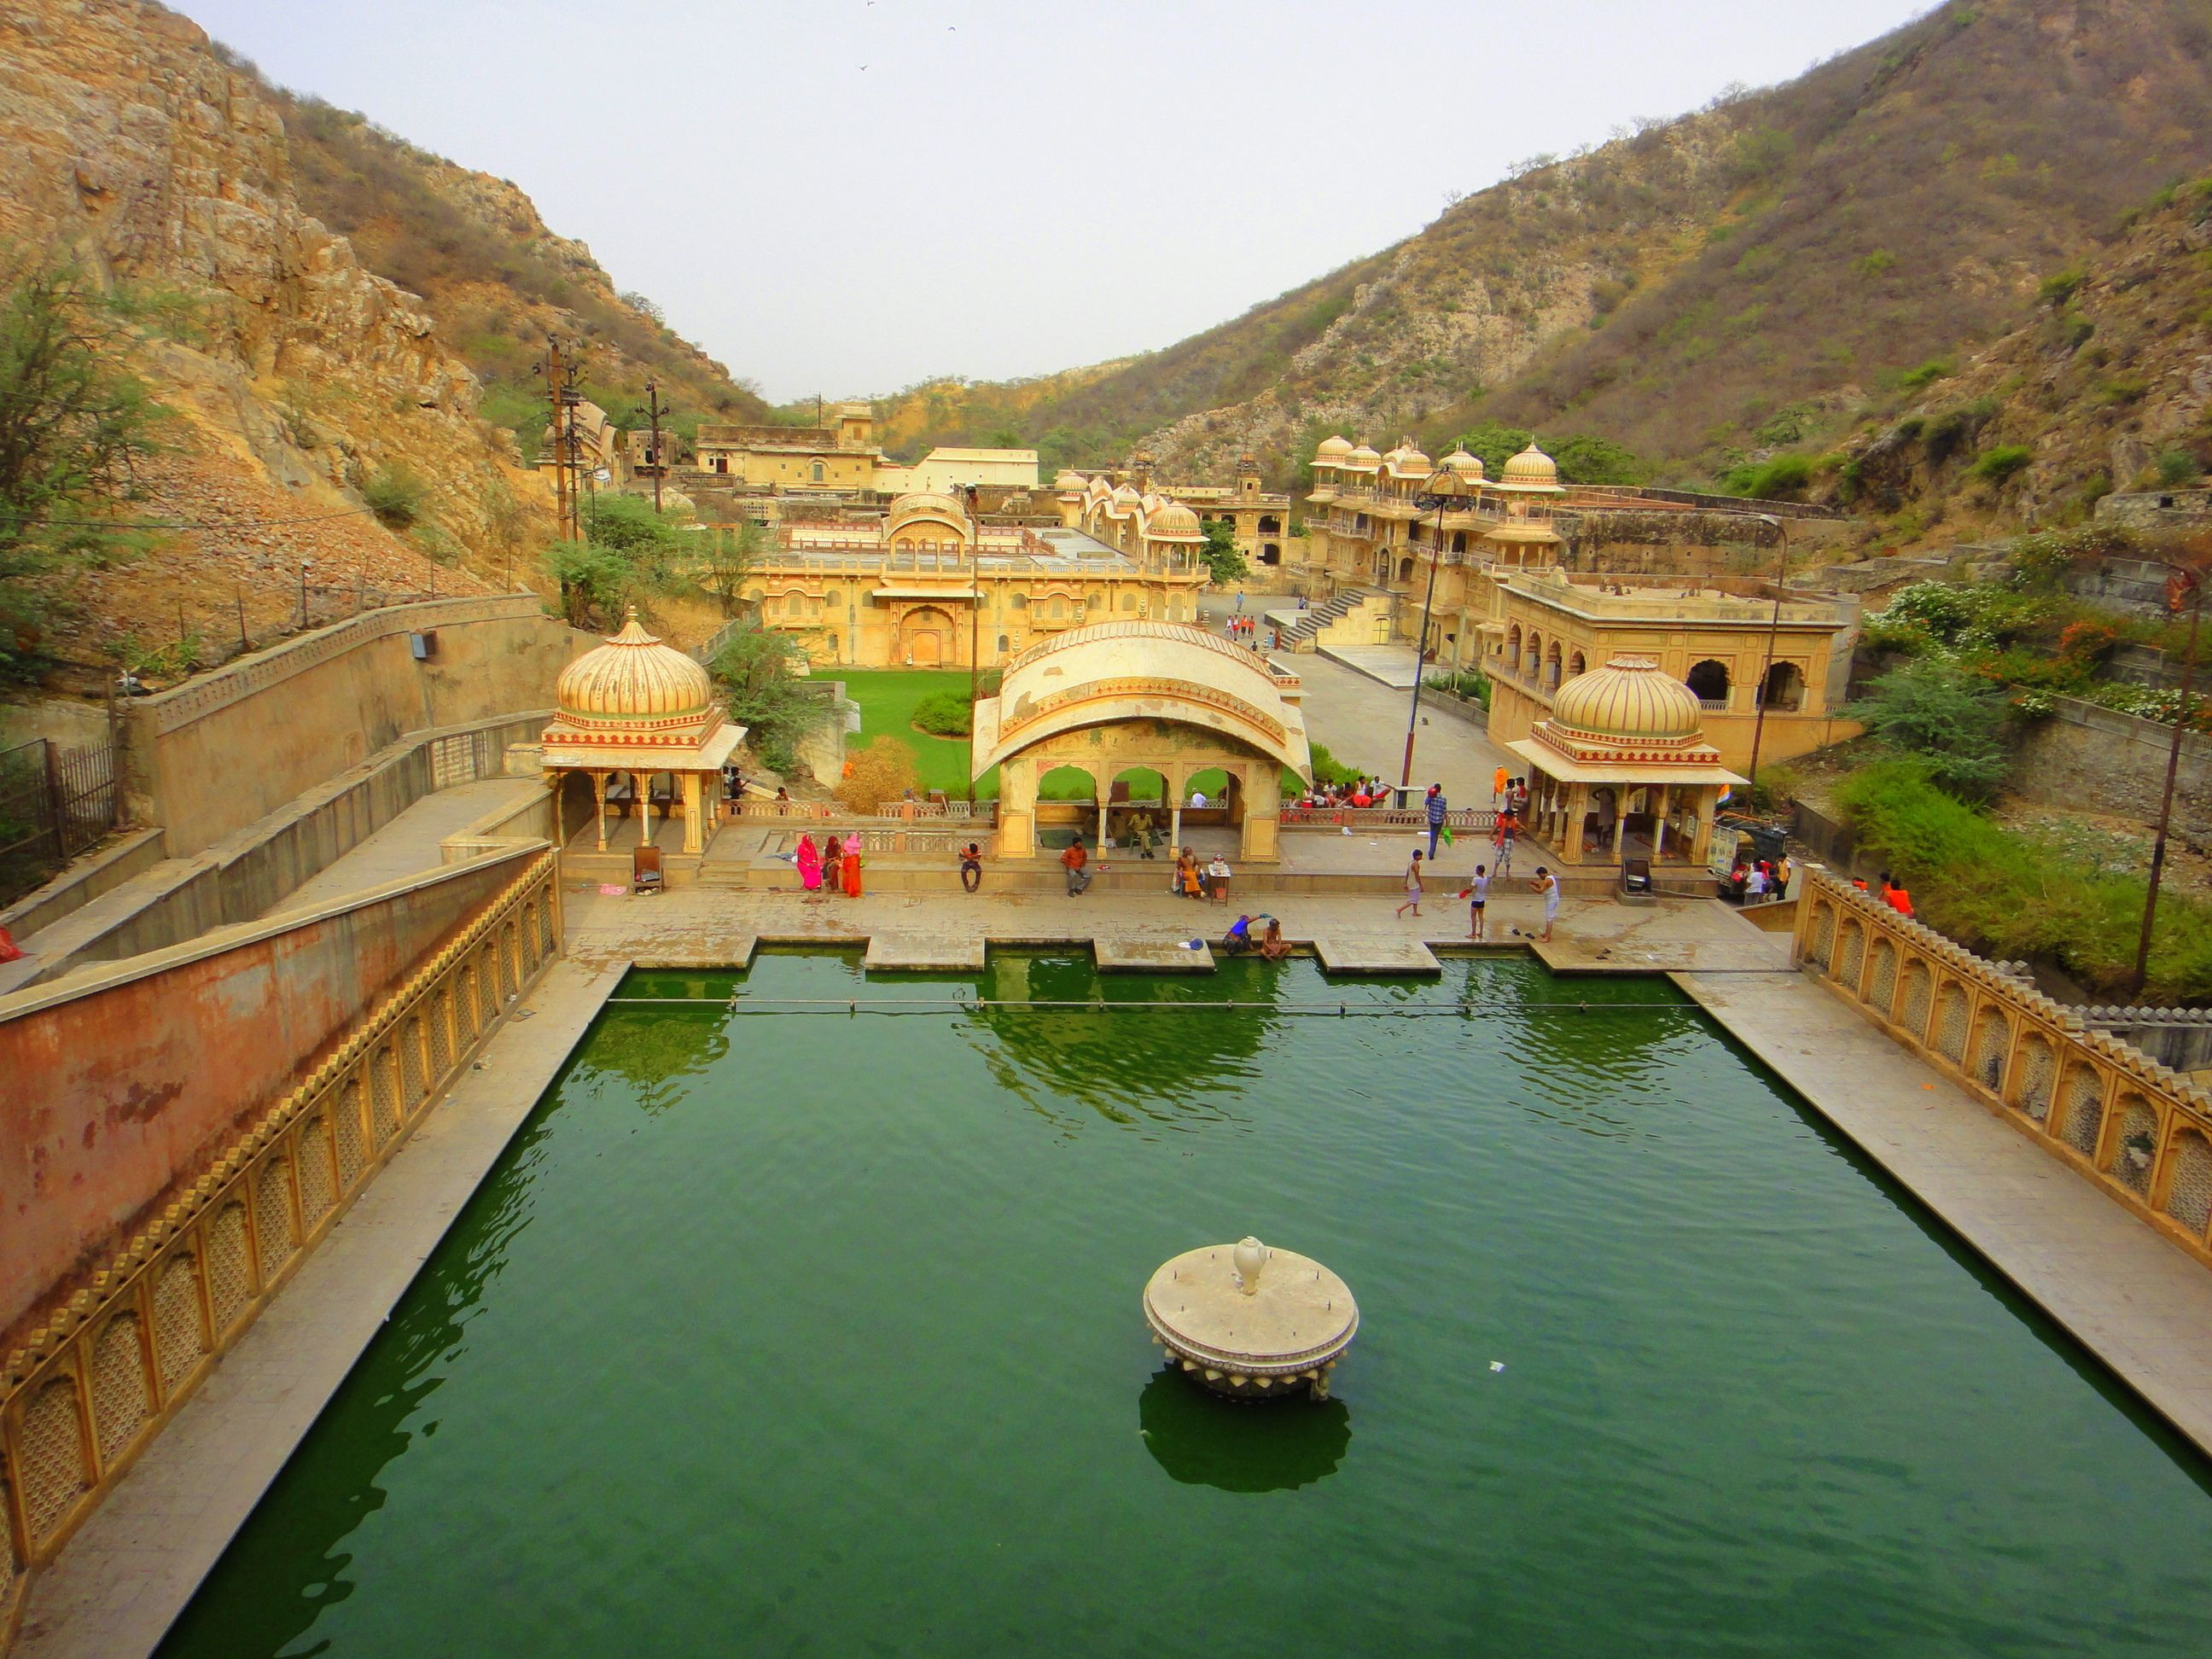 Jaipur is capital of Rajasthan, India and popular tourist destination in India. #Jaipur Day Tour with #Monkey #Temple is attractive deal including all sightseeing #Amber Fort, #JalMahal, #Galtaji (Monkey Temple), #City Palace and #Jantar Mantar. Book #Day tour now @ http://bhatitours.com/jaipur-day-tour-with-monkey-temple more mail us - info@bhatitours.com